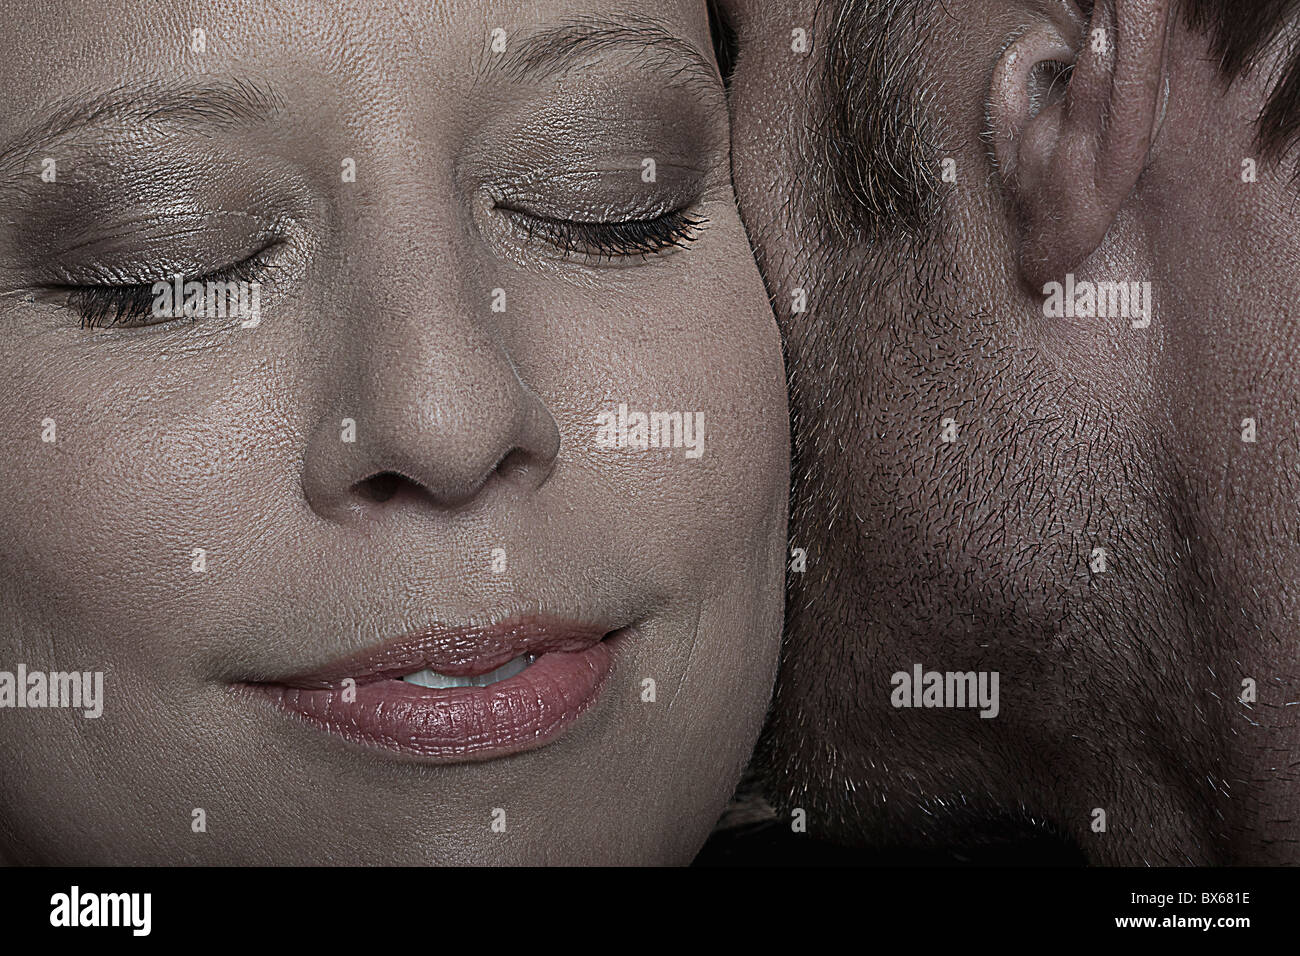 Face of a woman close to a man - Stock Image